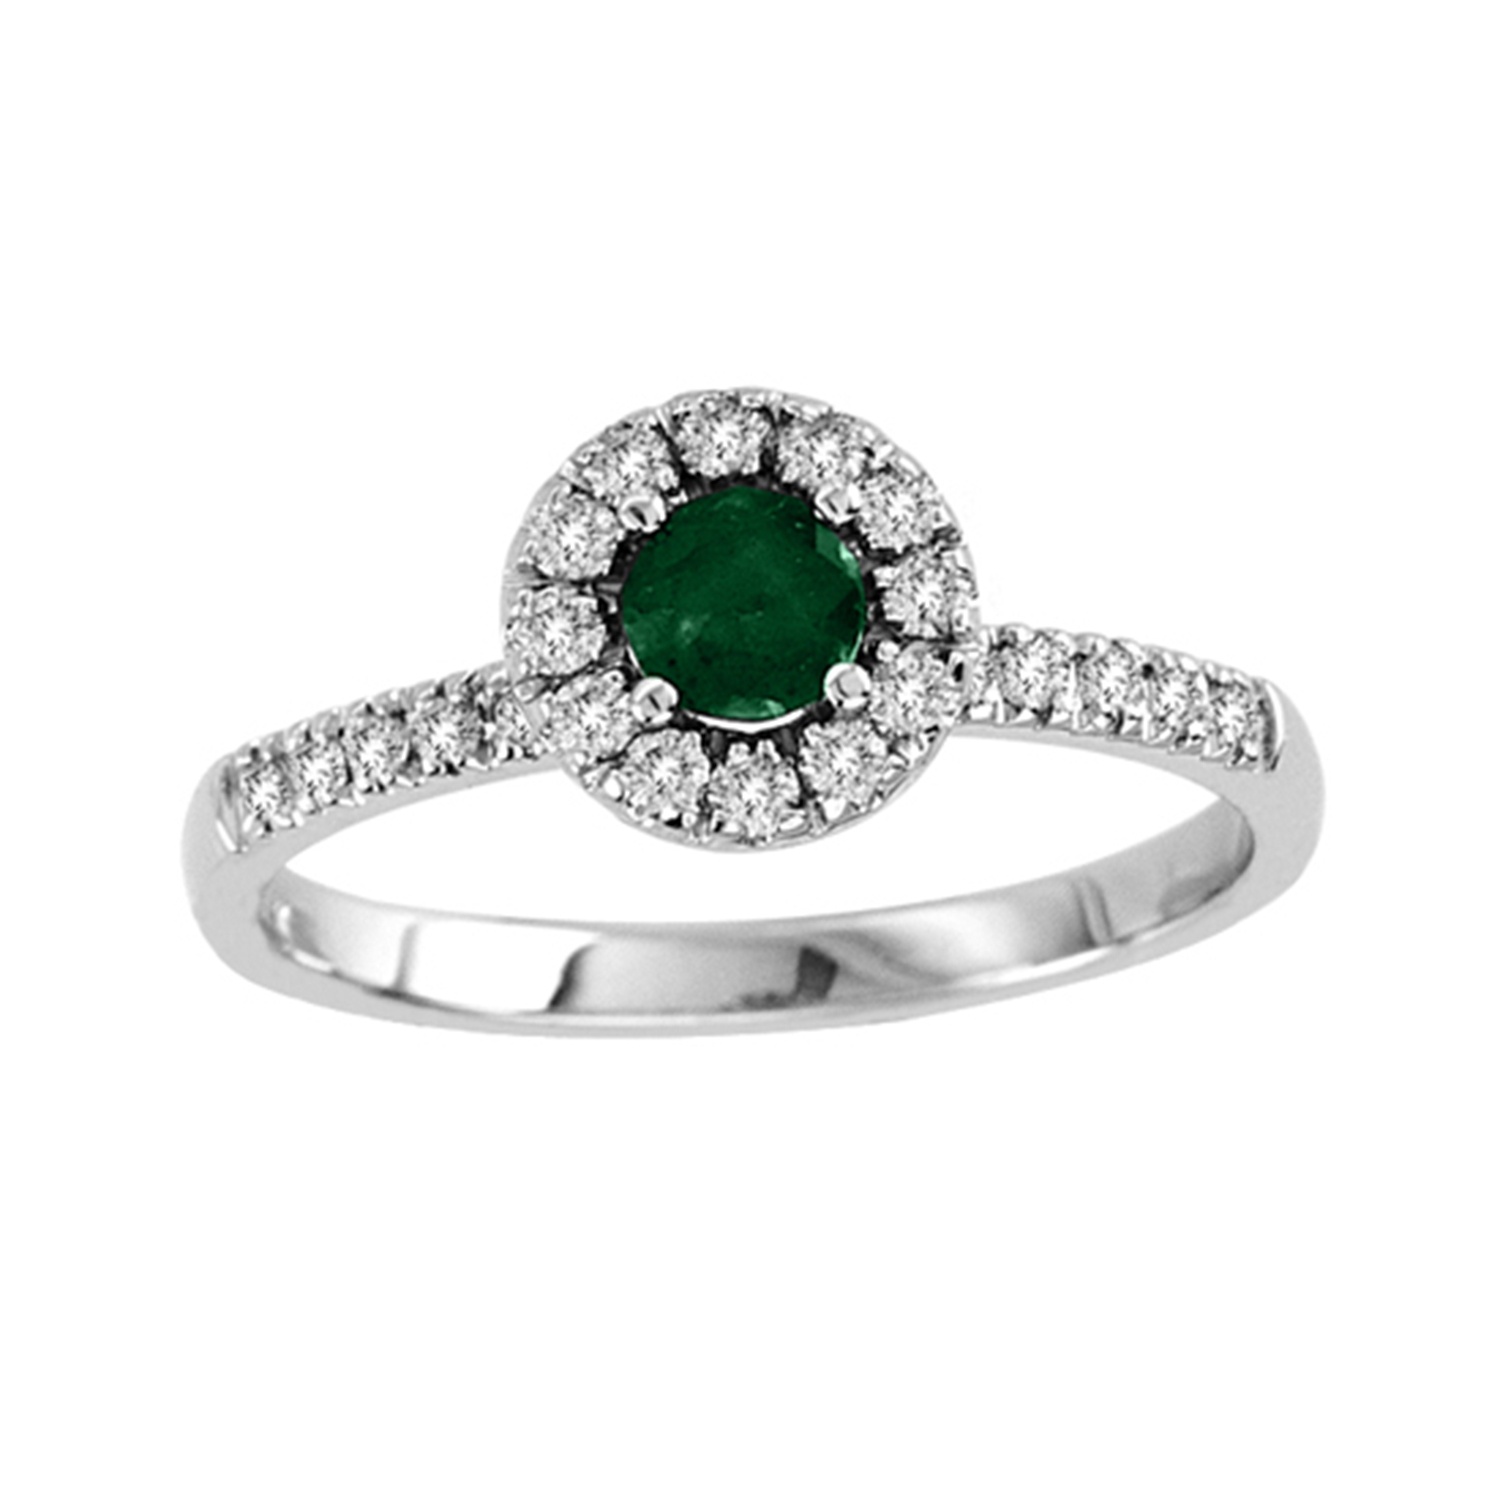 0.58cttw Emerald and Diamond Halo ring set in 14k Gold